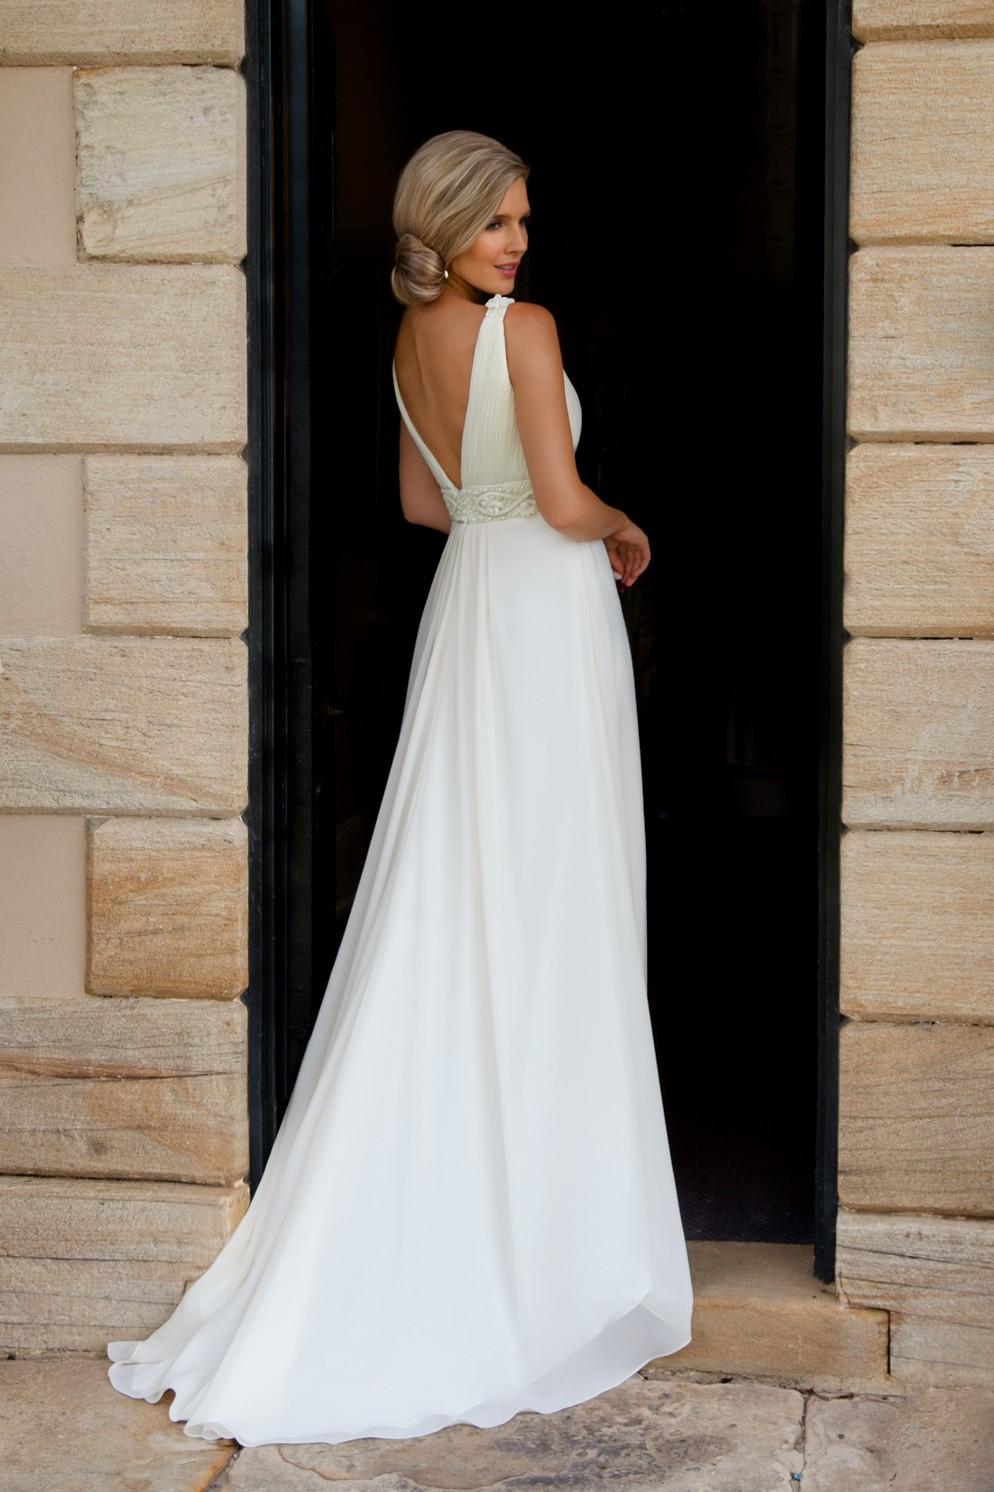 Couture Wedding Dresses Sydney 20142015  Fashion Trends